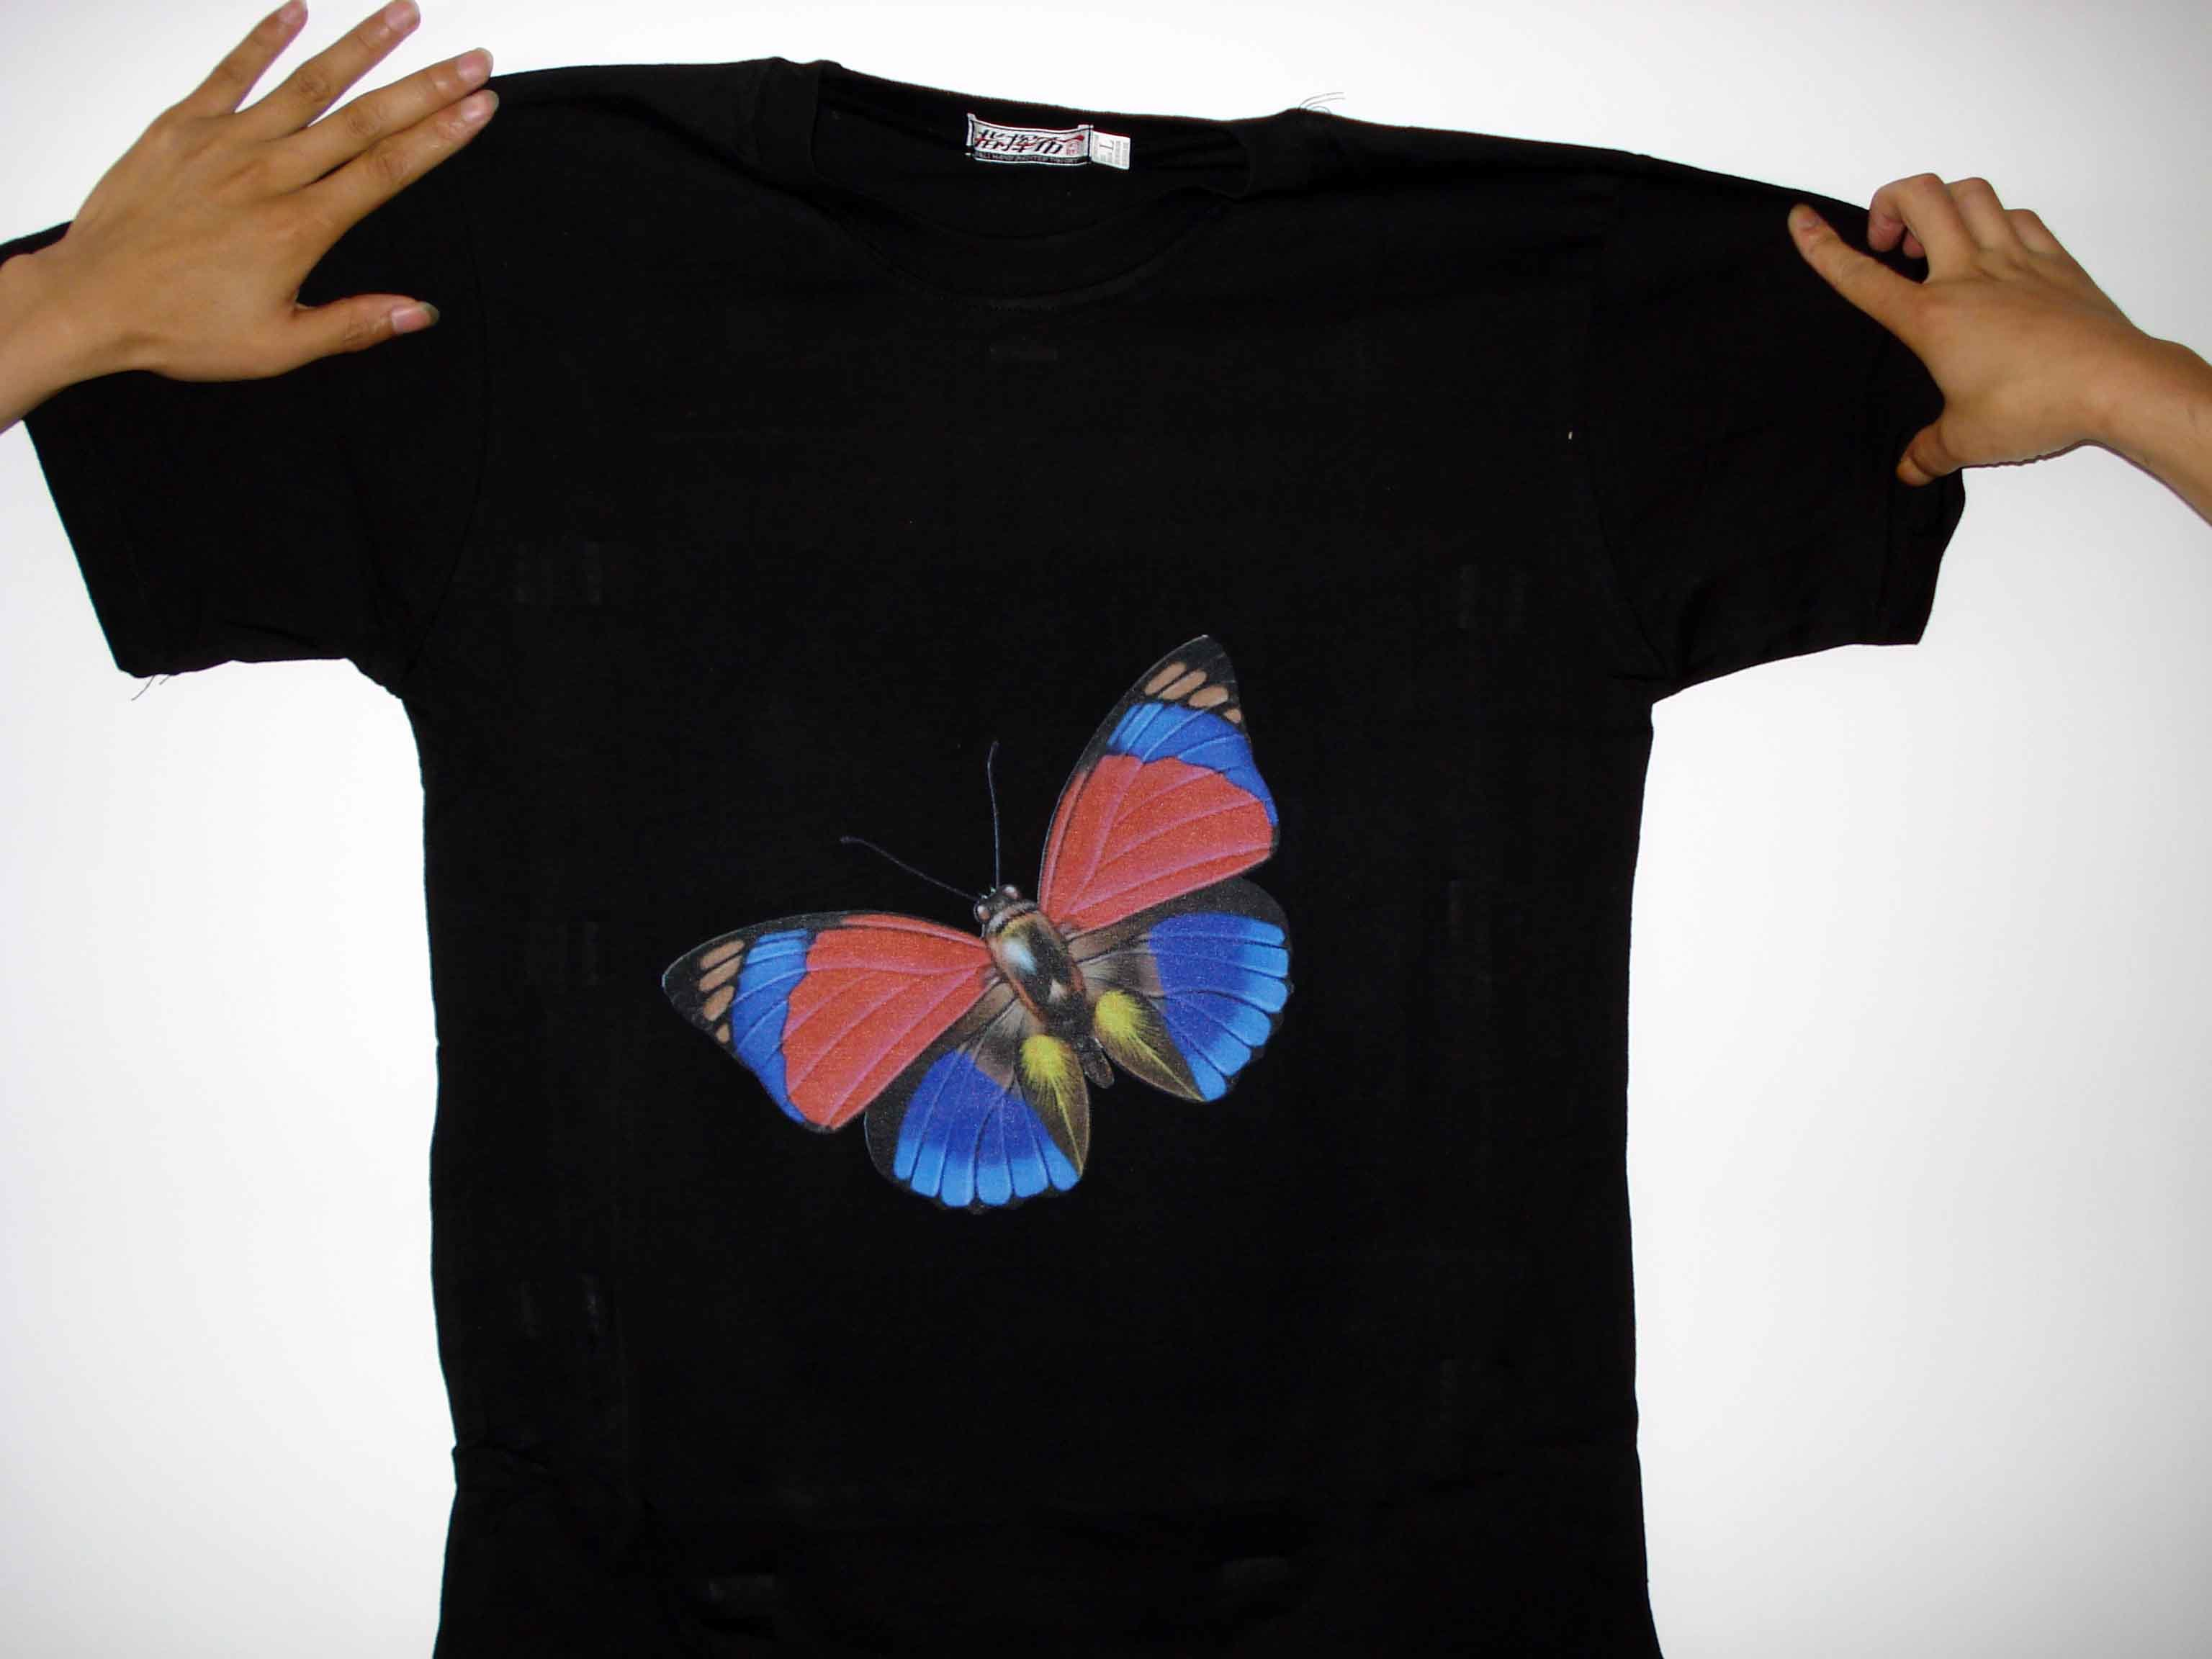 The information is not available right now for Digital printing for t shirts